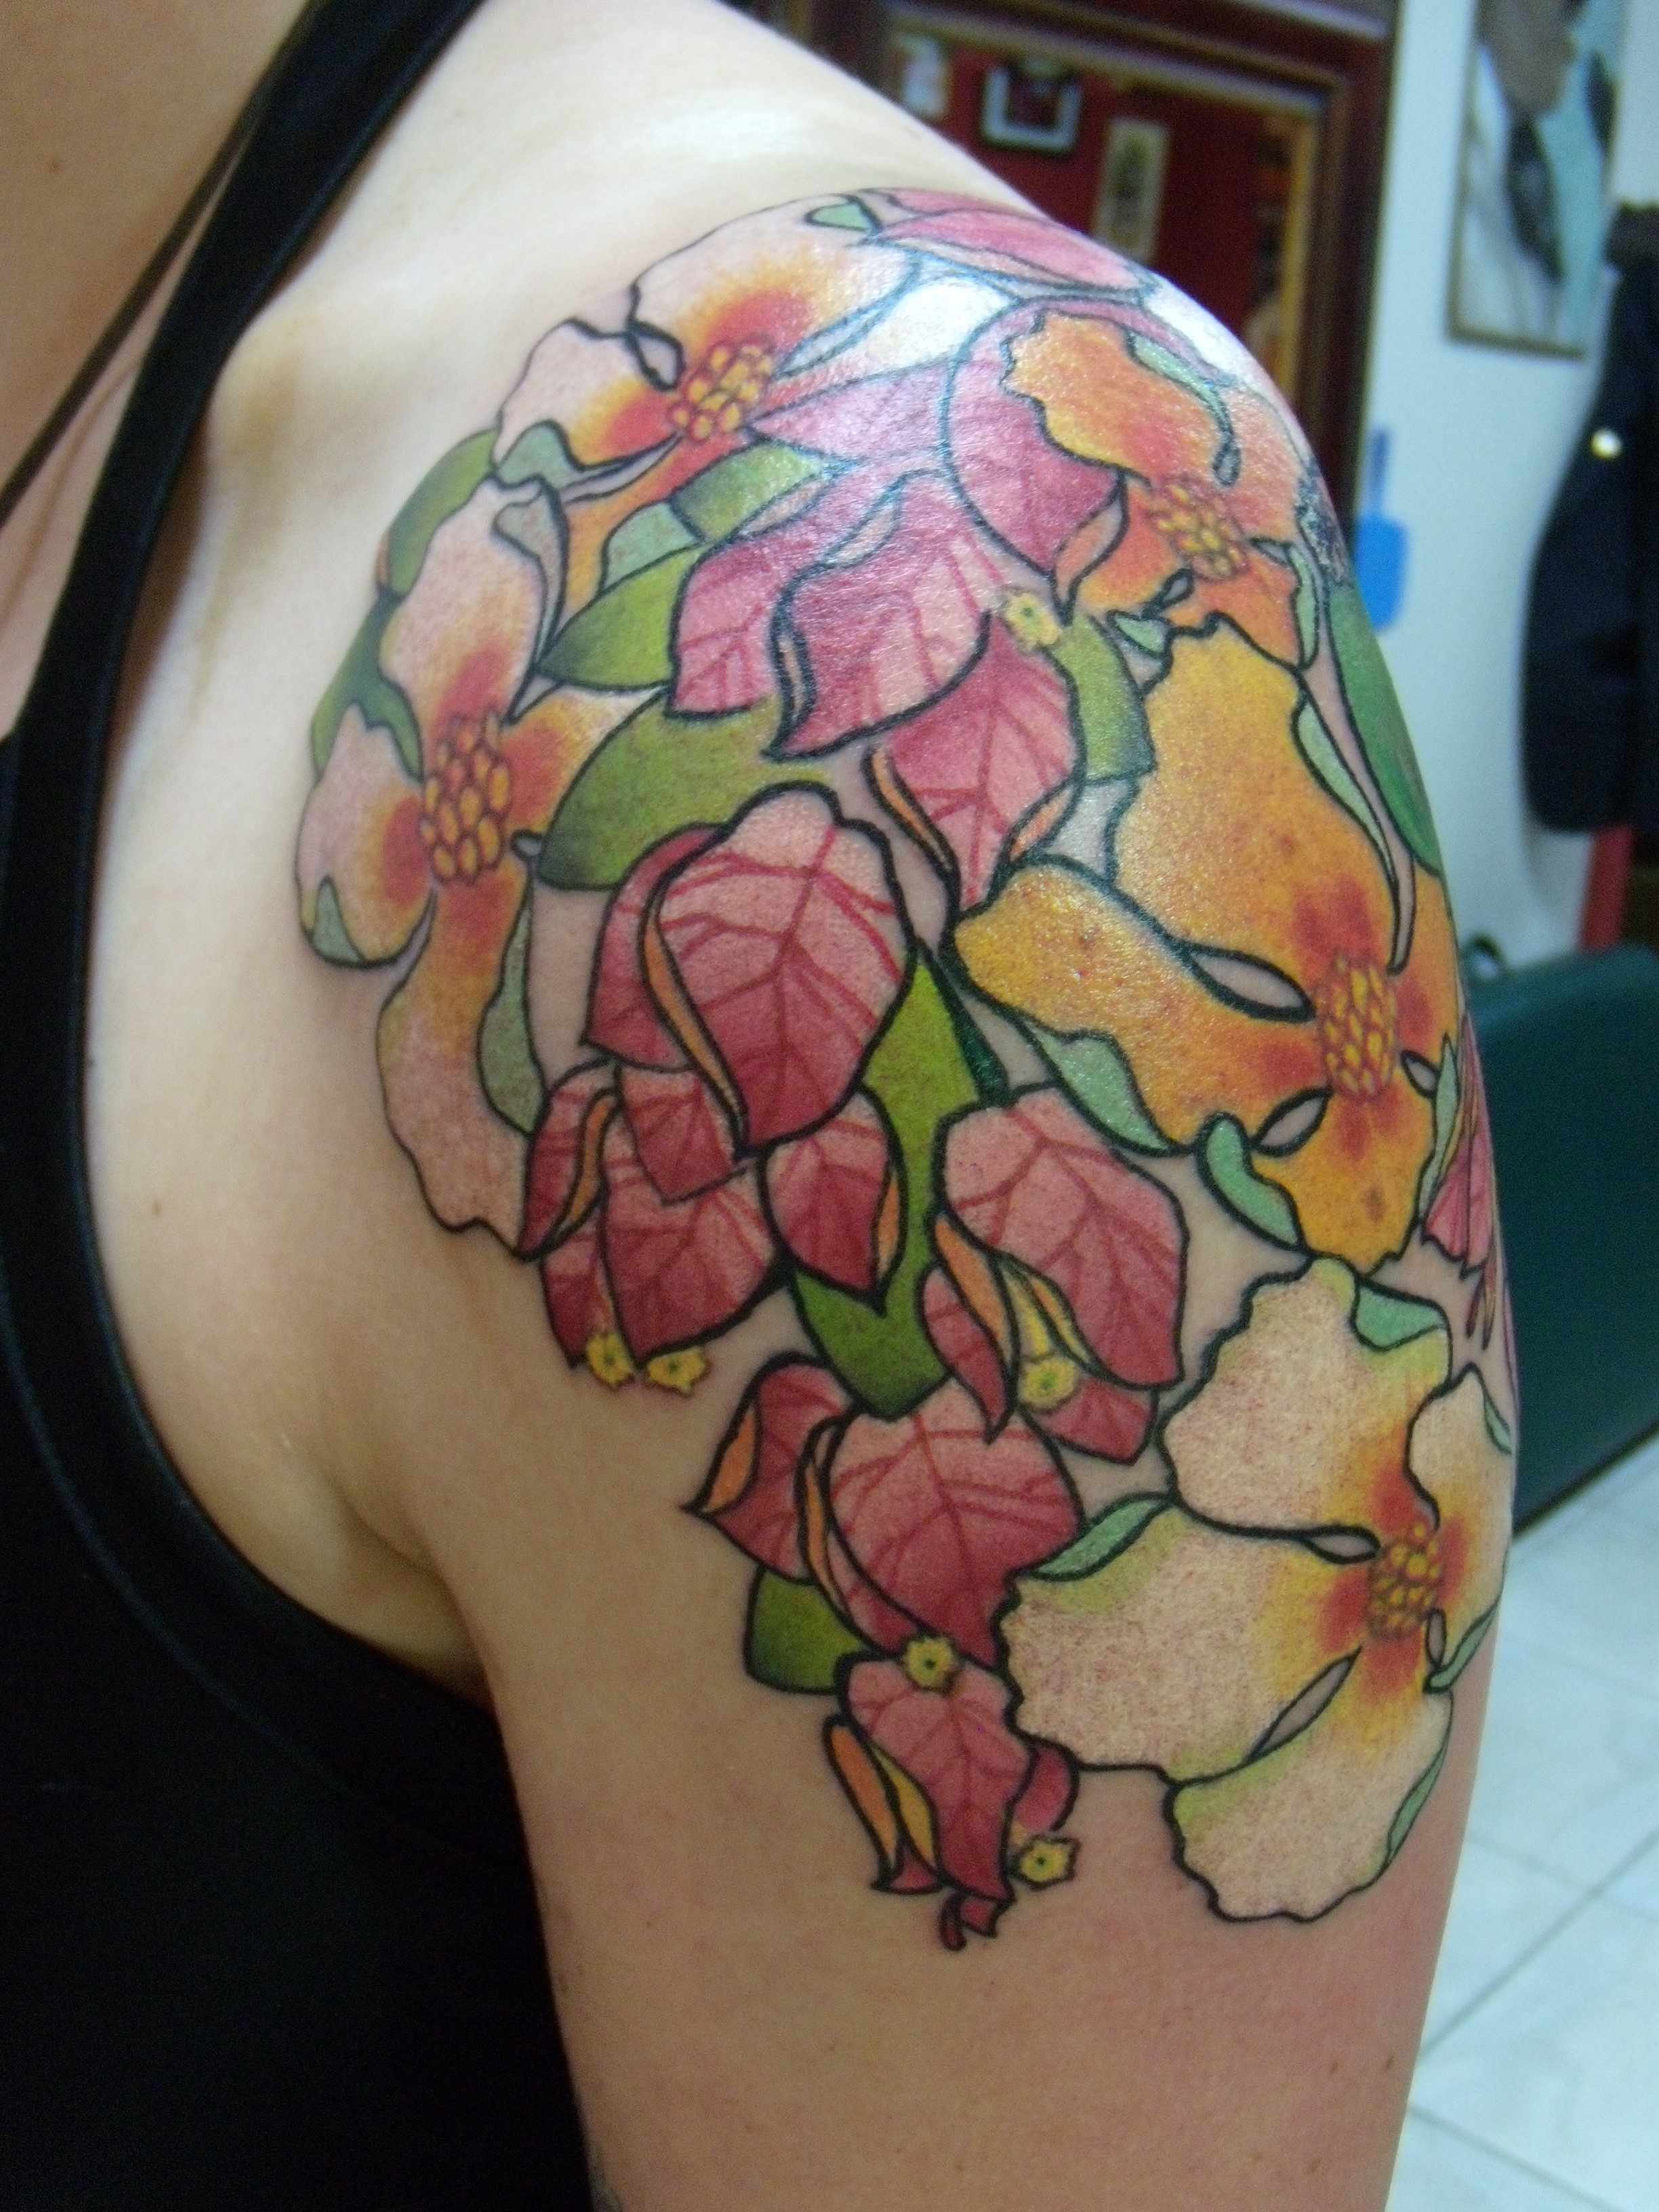 Shoulder Tattoo: Flower Tattoos Designs, Ideas And Meaning